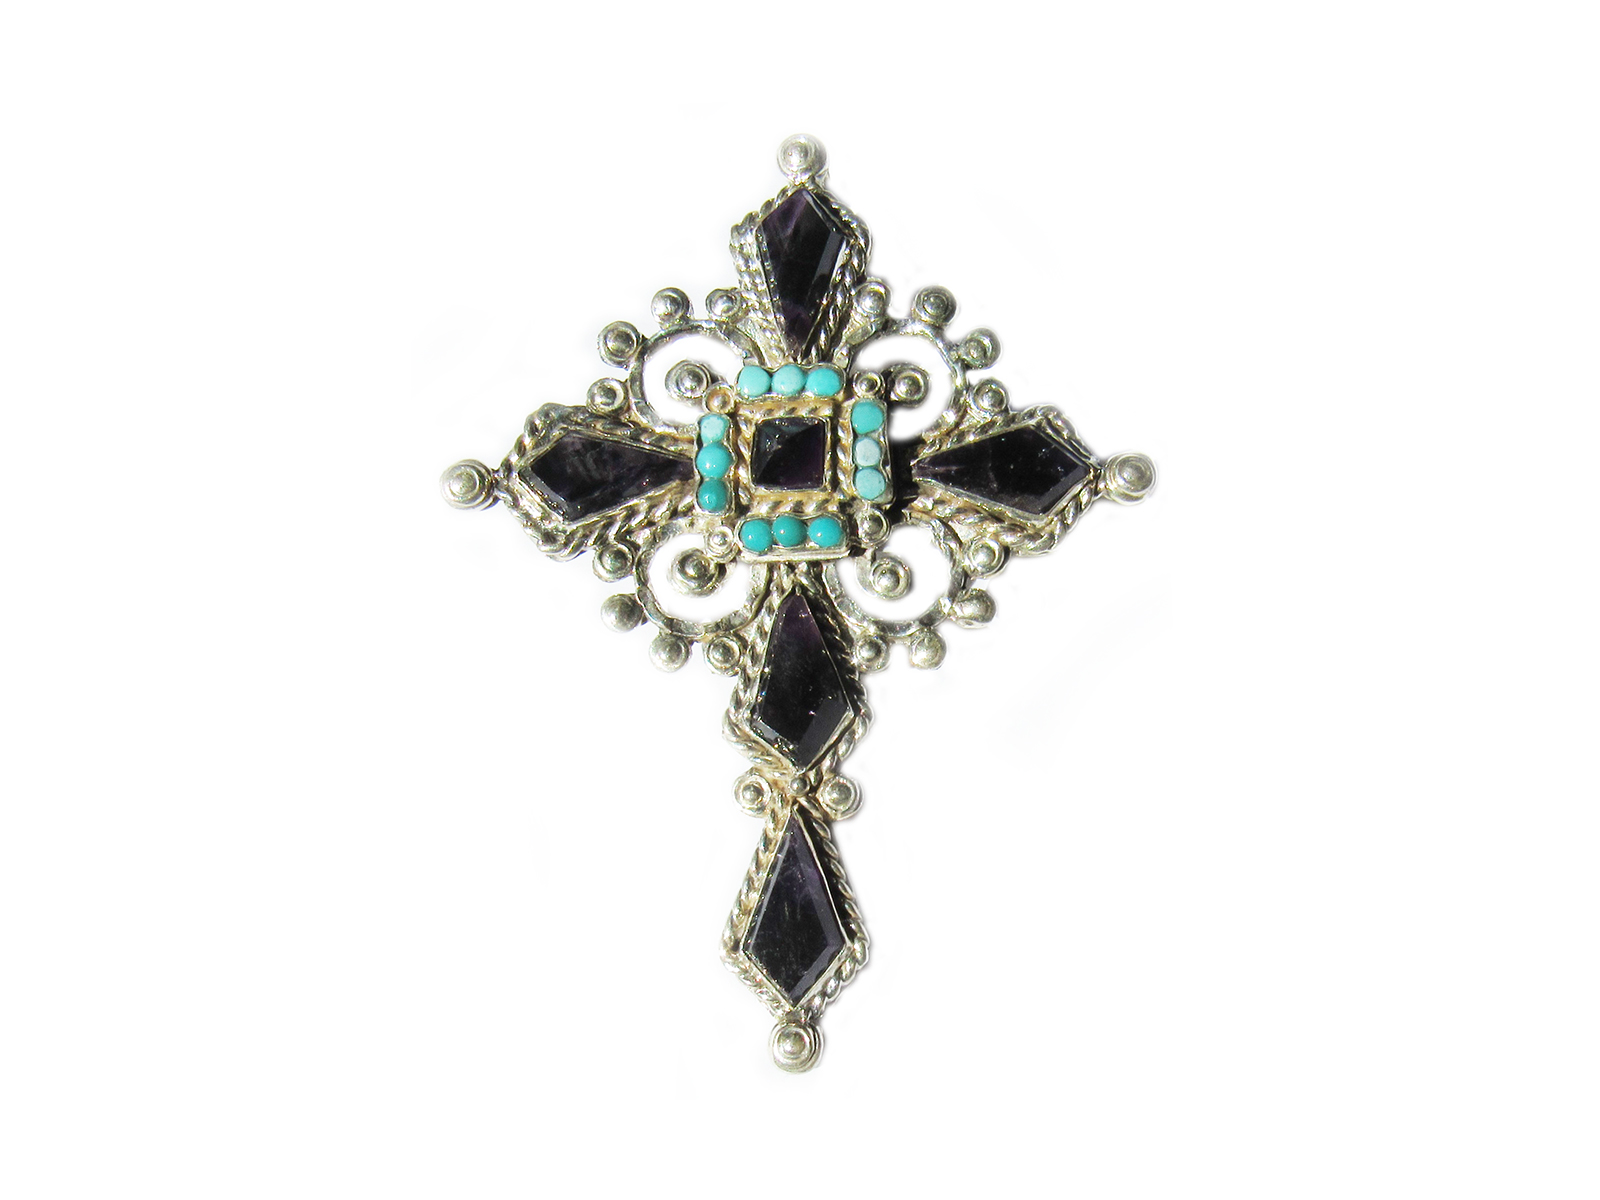 Faceted Amethyst and Turquoise Cross Pin/Pendant